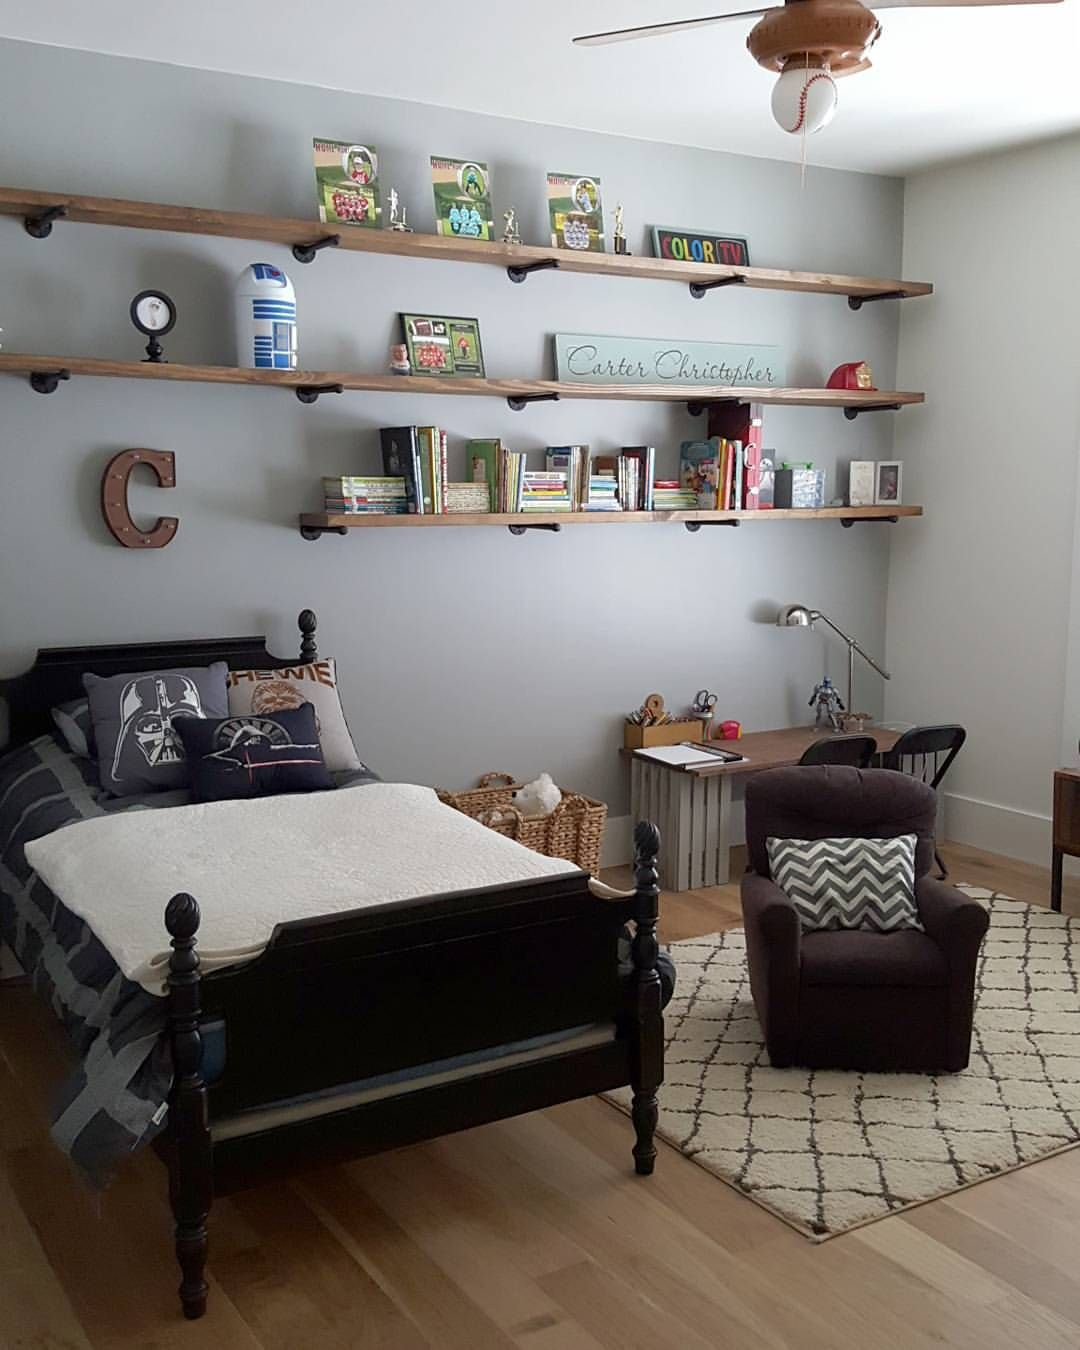 Pin by Kia Britt on Little Ones: Sons (With images ... on Teenager:_L_Breseofm= Bedroom Ideas  id=75134